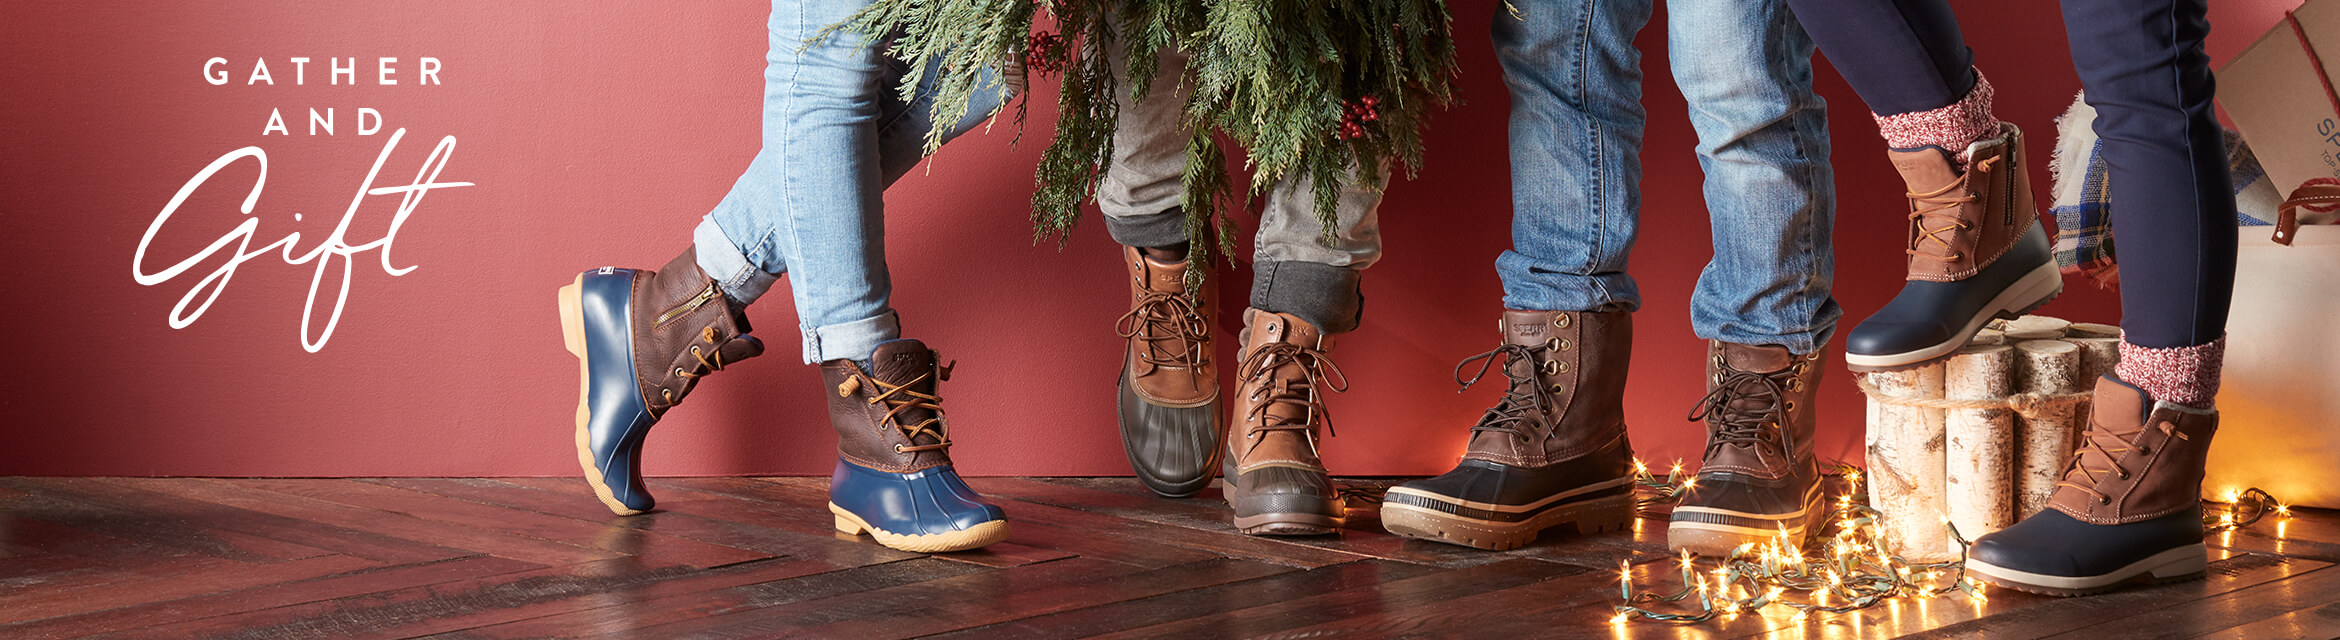 People wearing Duck Boots are comparing festive decorations while standing on a wood floor. I hope they wiped their feet!